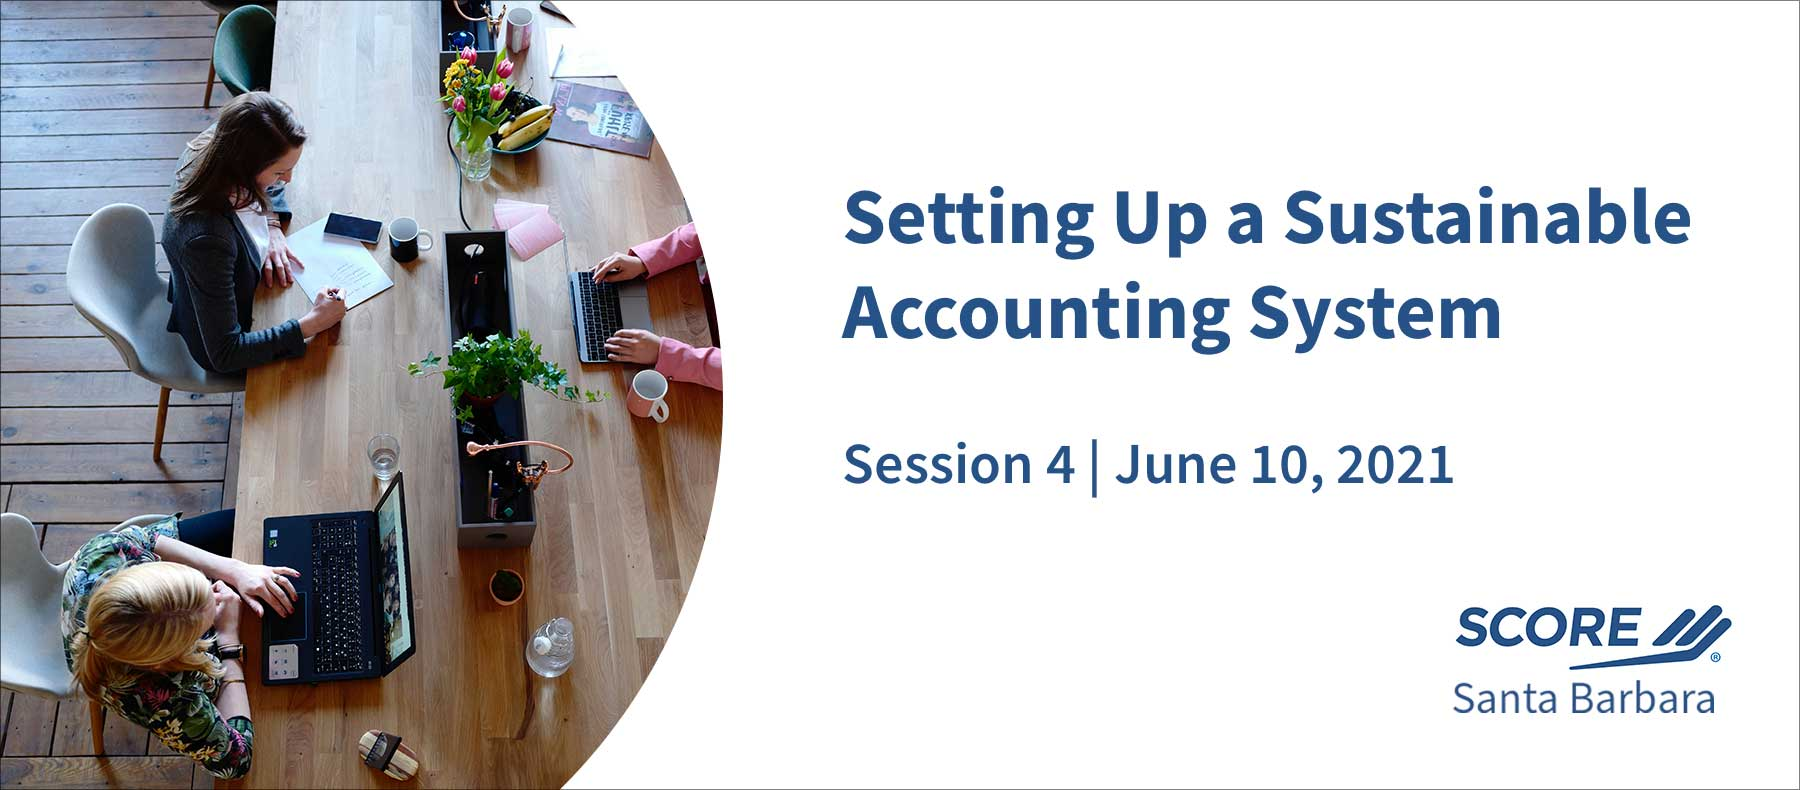 SCORE setting up accounting system session 4